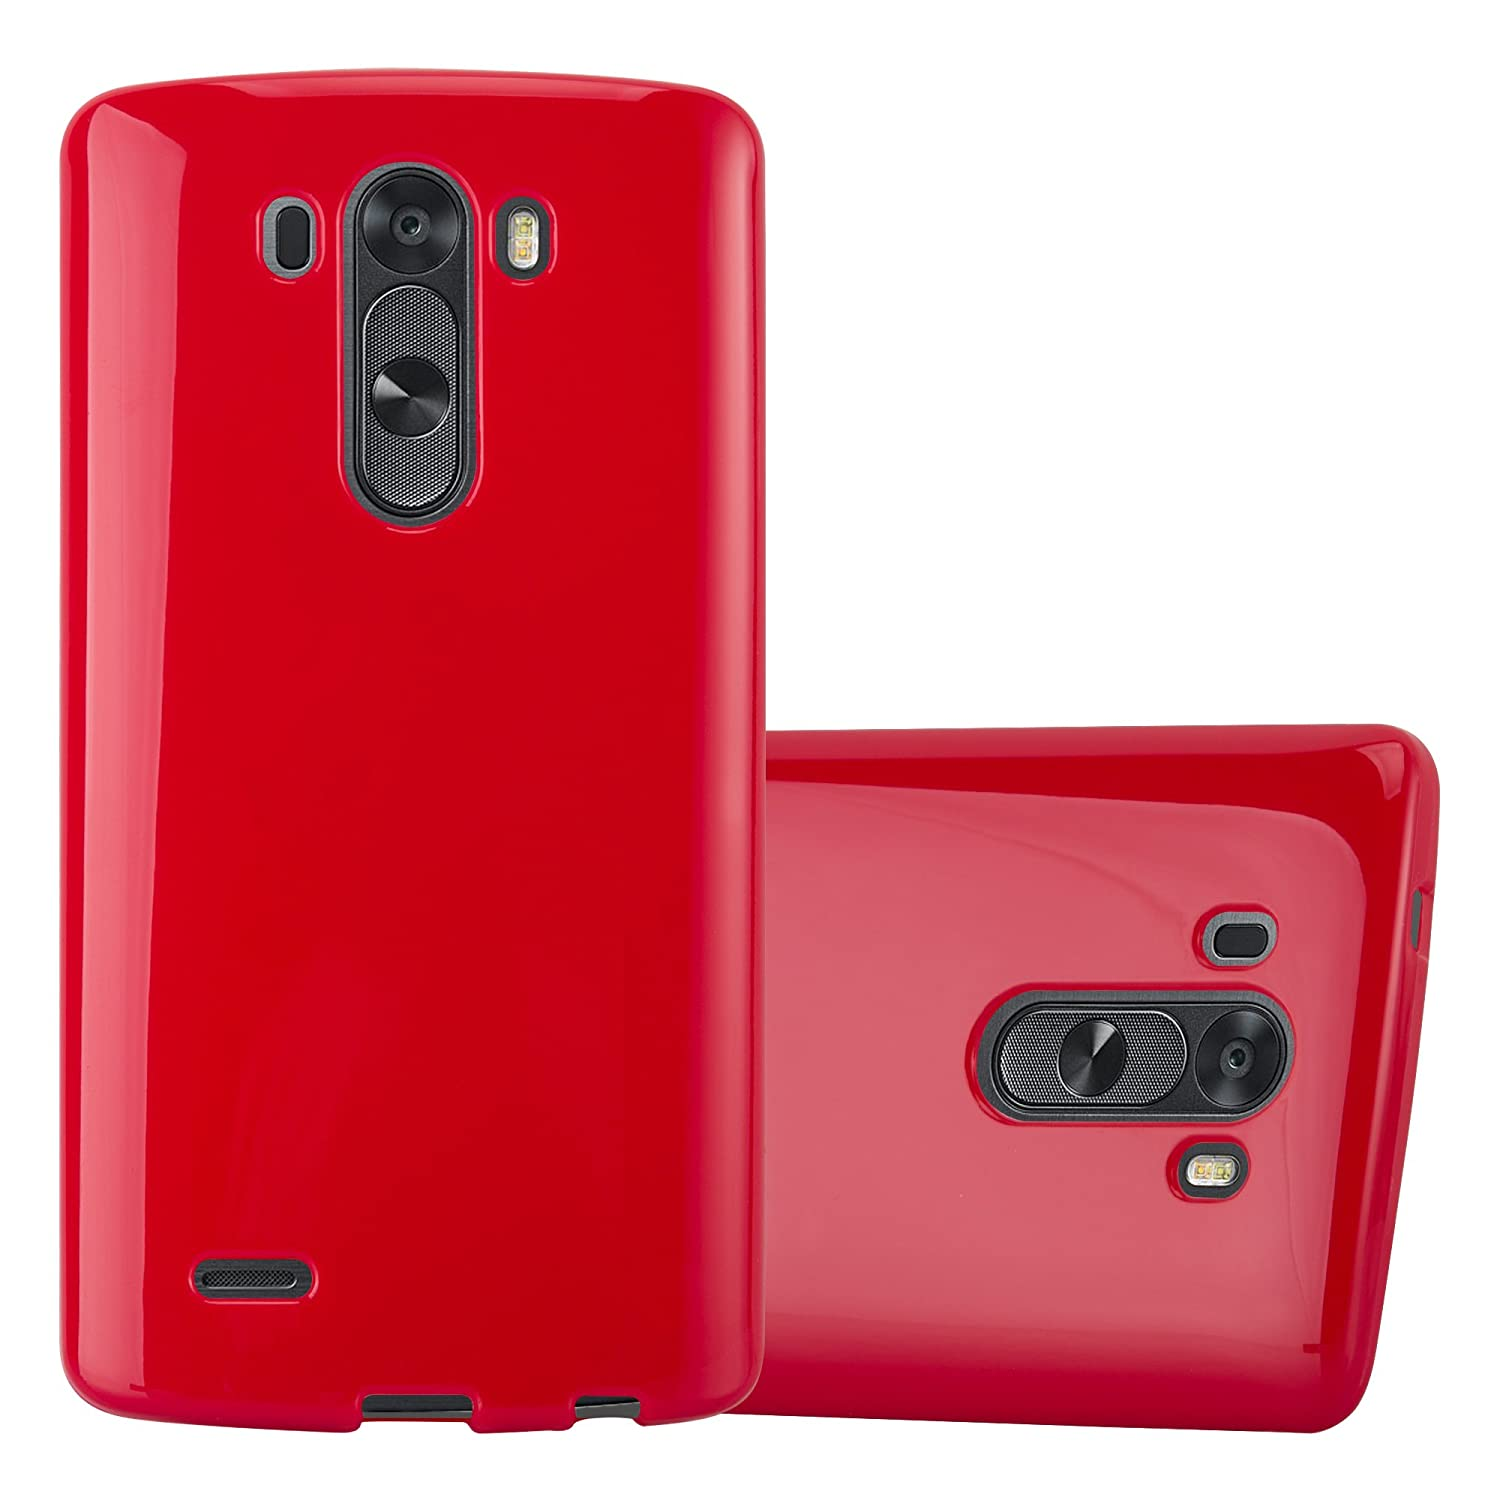 quality design 3e5e9 4ac85 Cadorabo Case Works with LG G3 in Jelly RED – Shockproof and Scratch  Resistant TPU Silicone Cover – Ultra Slim Protective Gel Shell Bumper Back  ...